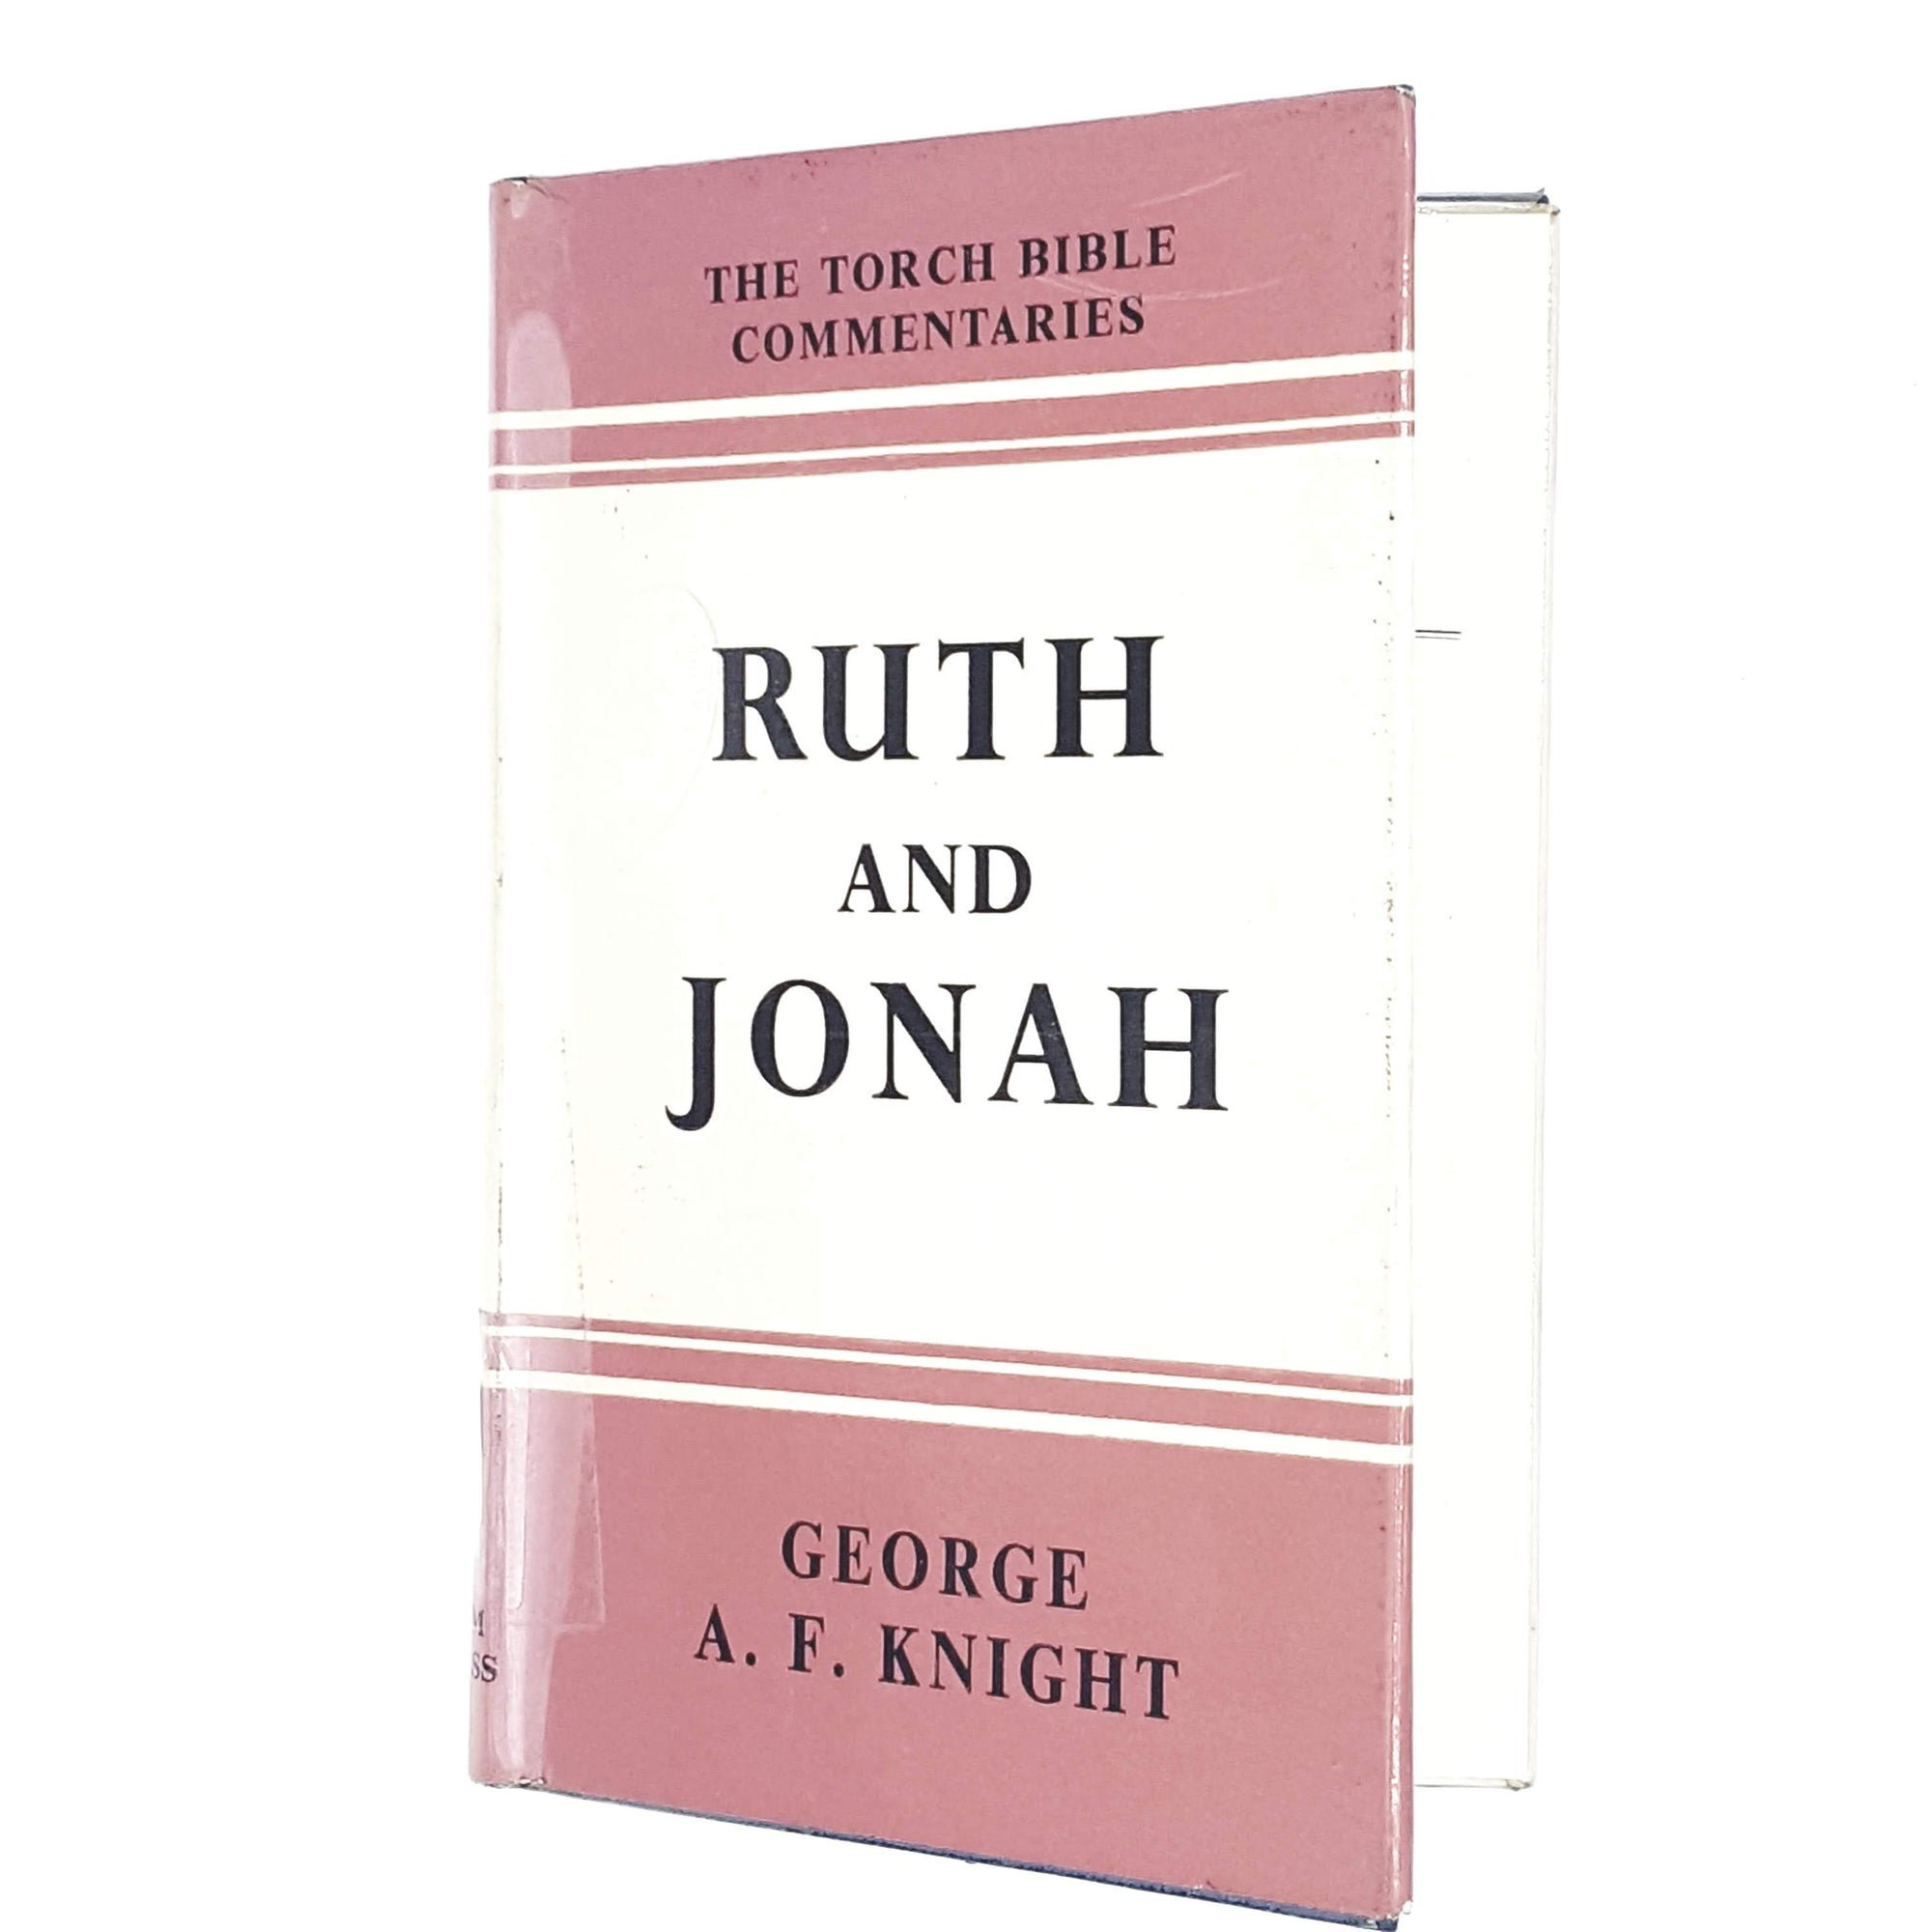 Vintage Bible Commentaries: Ruth and Jonah 1960